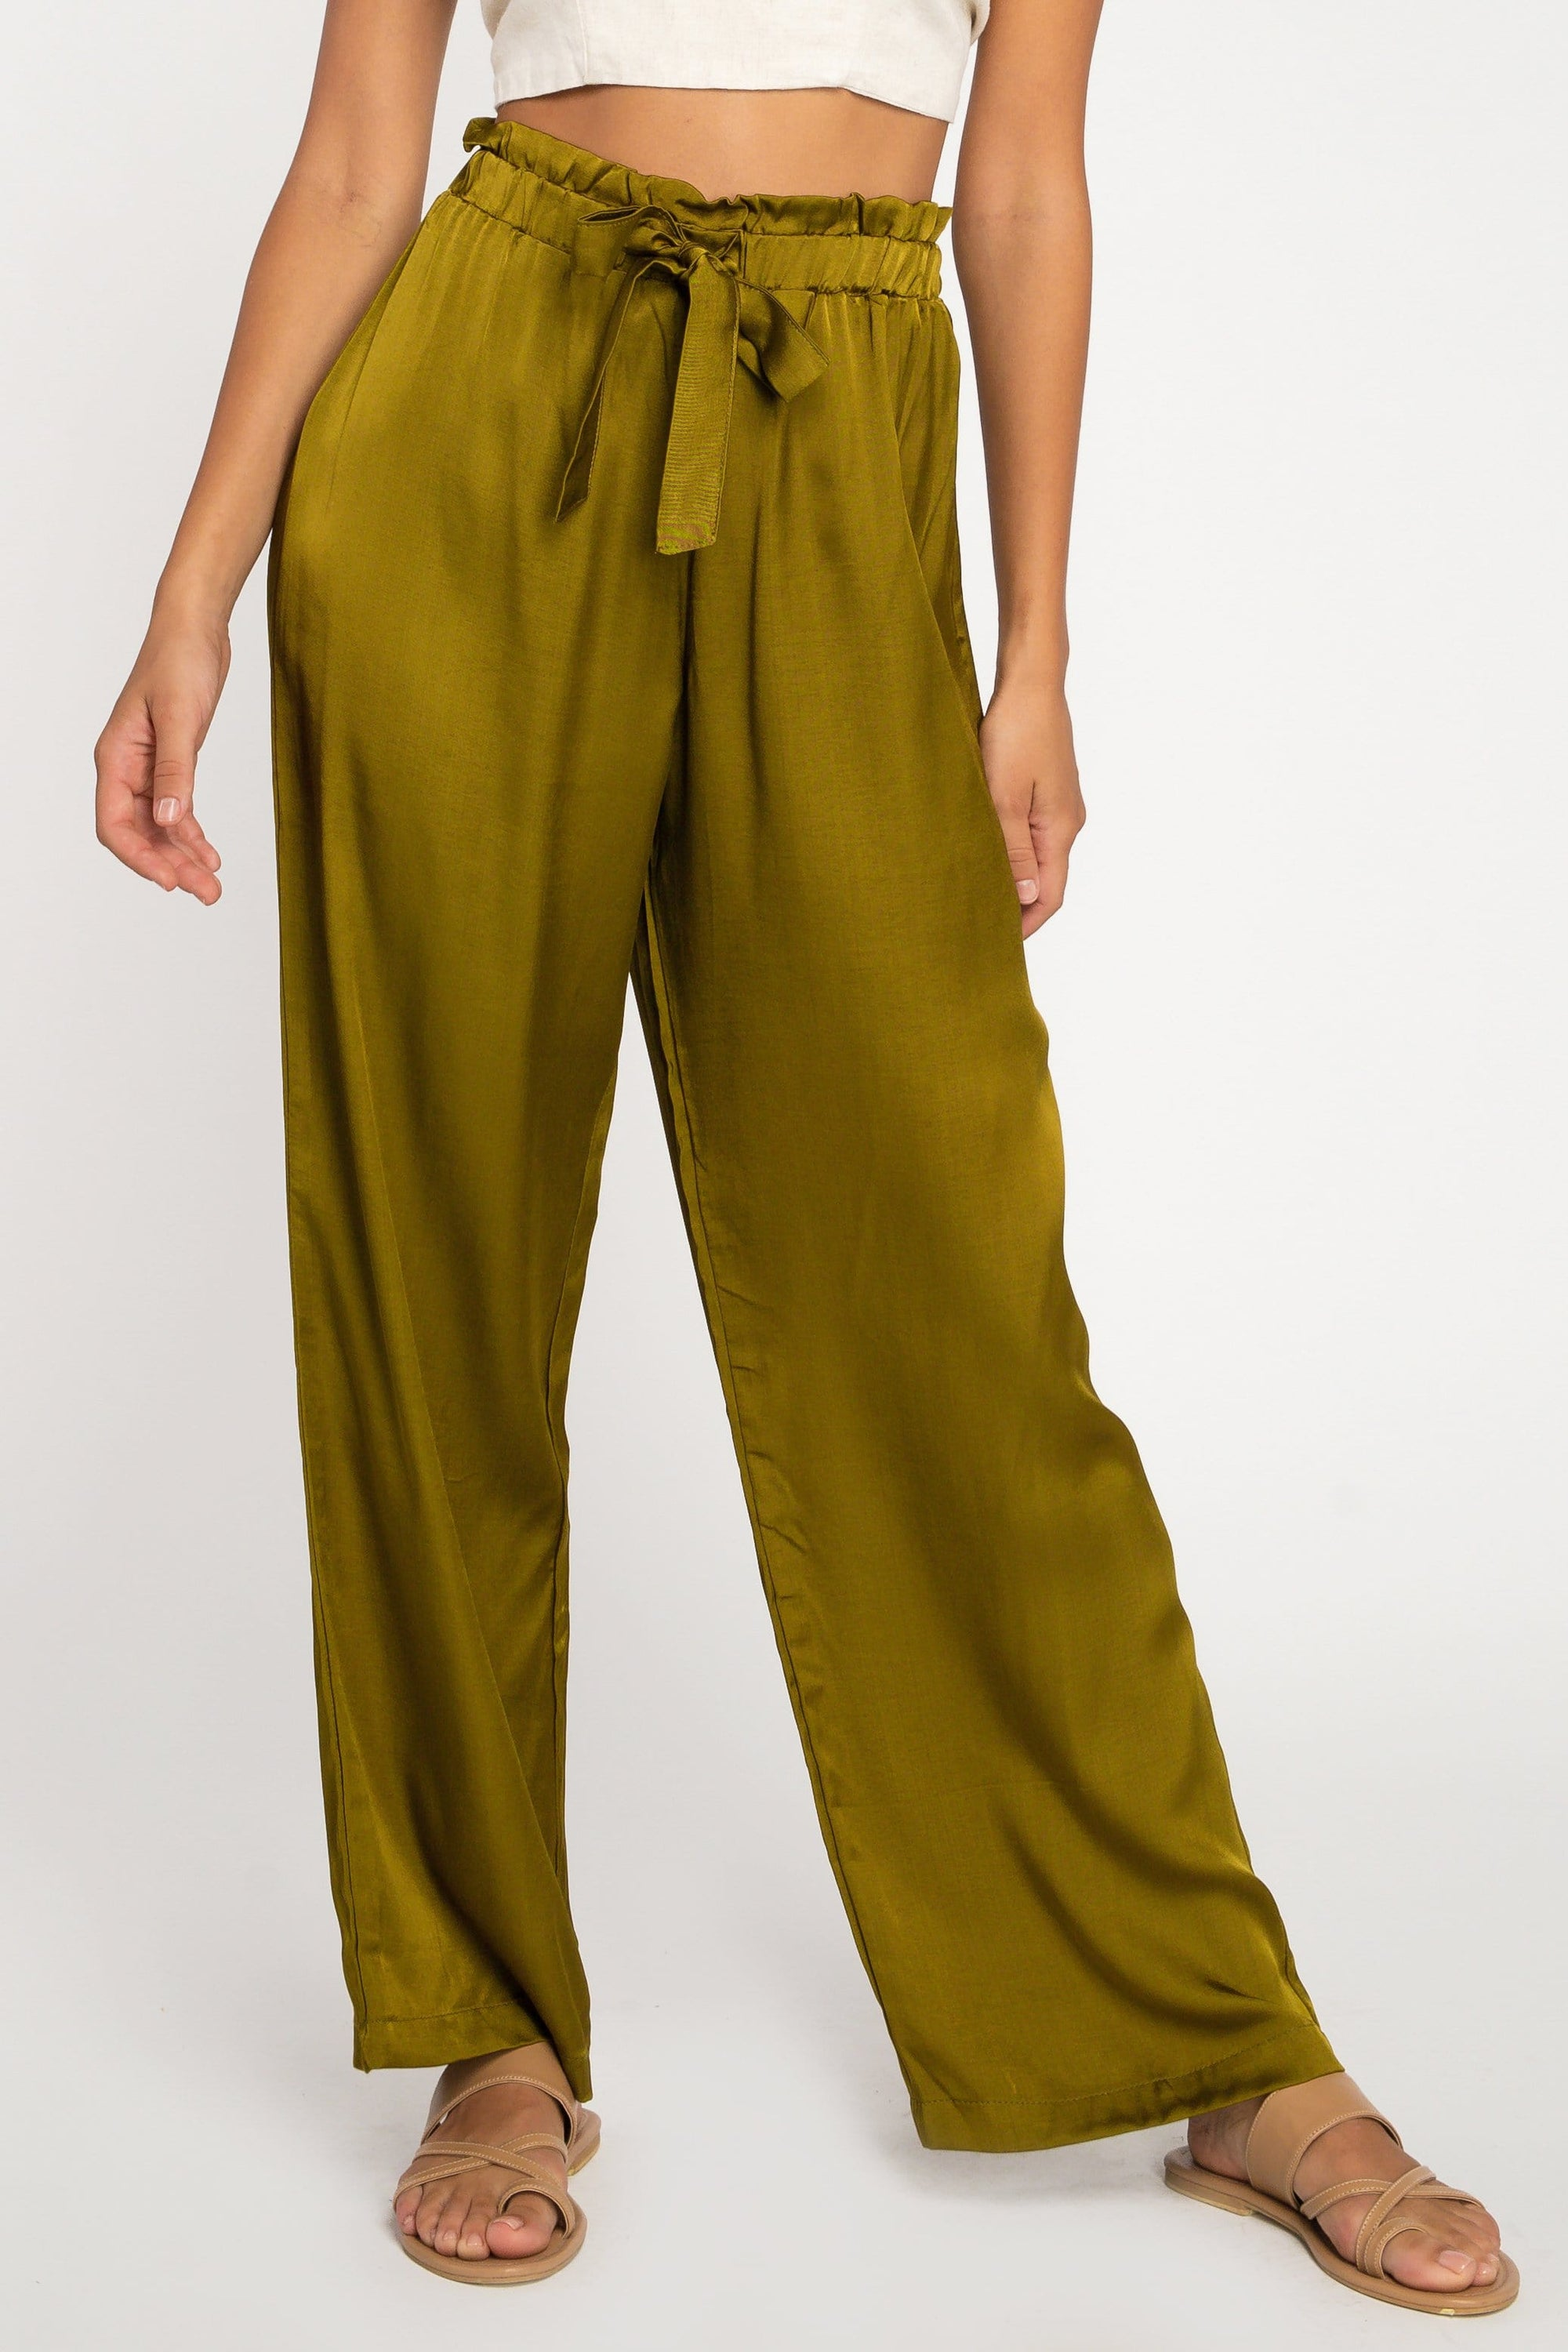 Benita Long Pant - Woman Pants - LOST IN PARADISE